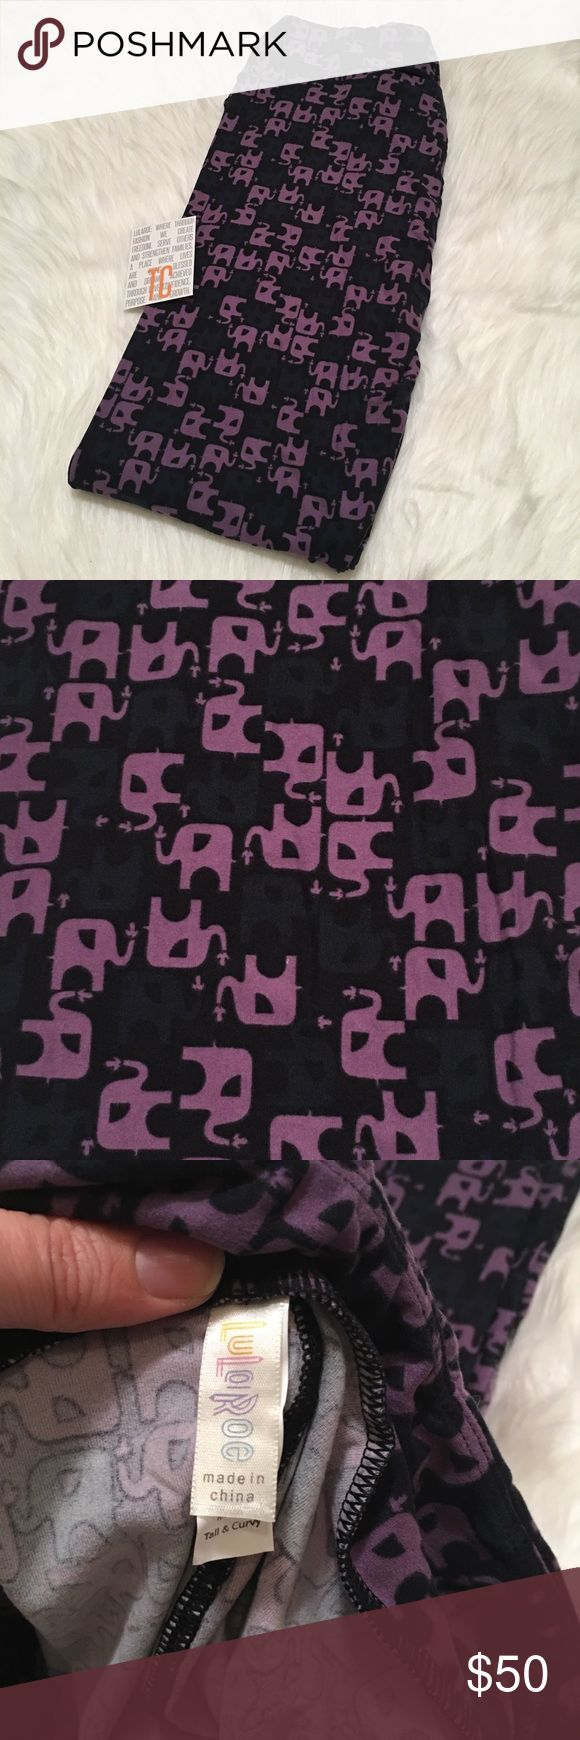 """NWT LulaRoe TC Elephant Leggings (UNICORN) **No comments on pricing. Price reflects how rare/hard to find the leggings are, amount of time spent searching for them & average sale prices of these """"unicorns"""" online.** NWT, never worn. LuLaRoe leggings. The leggings that are """"buttery"""" soft! Pattern: Black with dark grey and purple elephants squirting water! Size: Tall & Curvy (TC). See size chart. Made in: China. TRADES. Am open to *reasonable* offers on this pair. LuLaRoe Pants Leggings"""